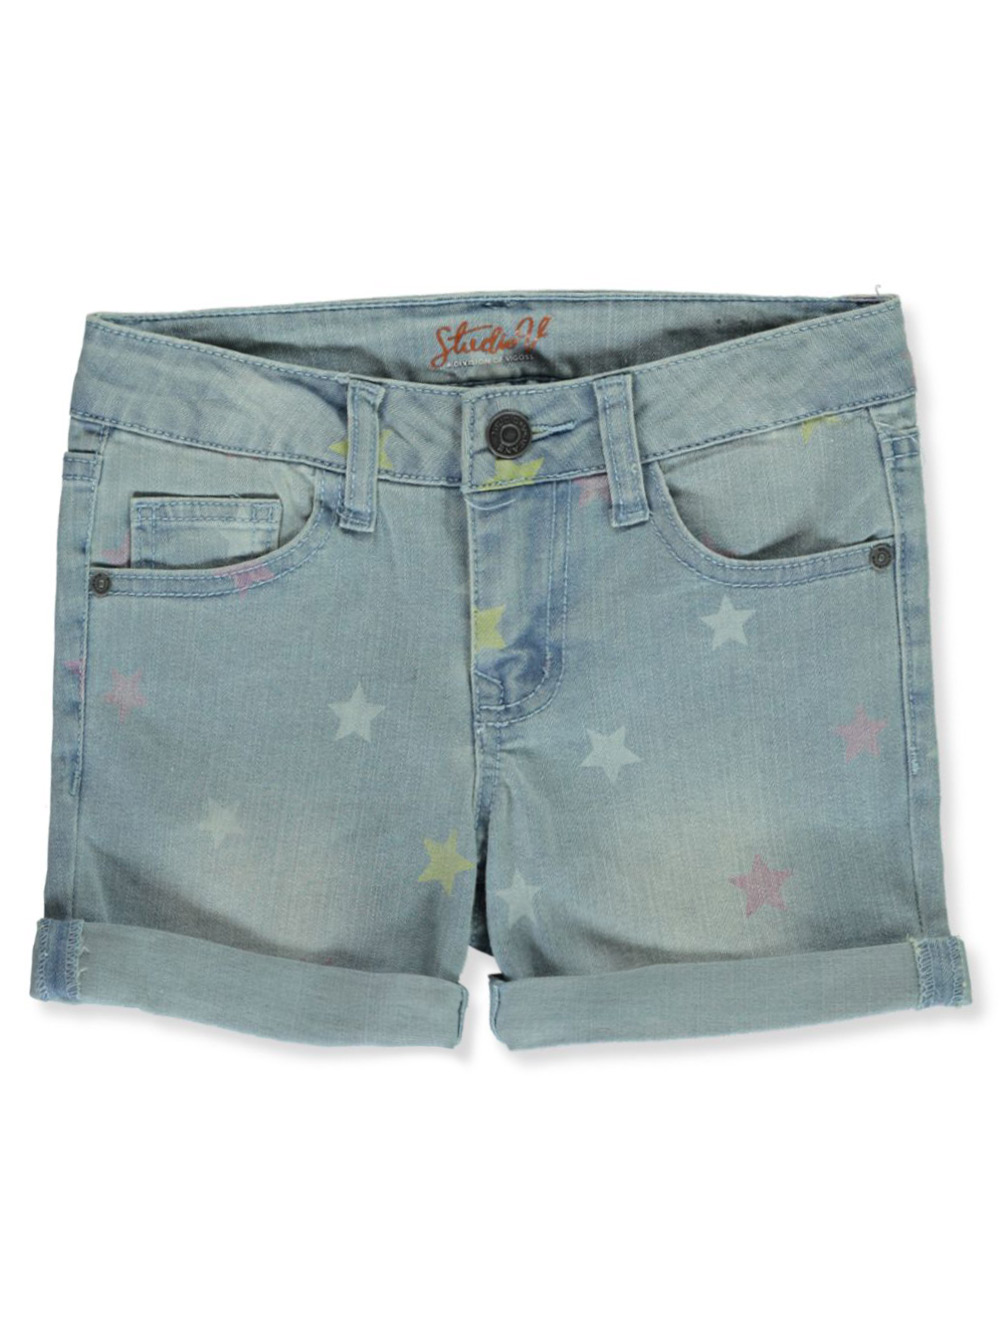 Girls Medium Denim Shorts